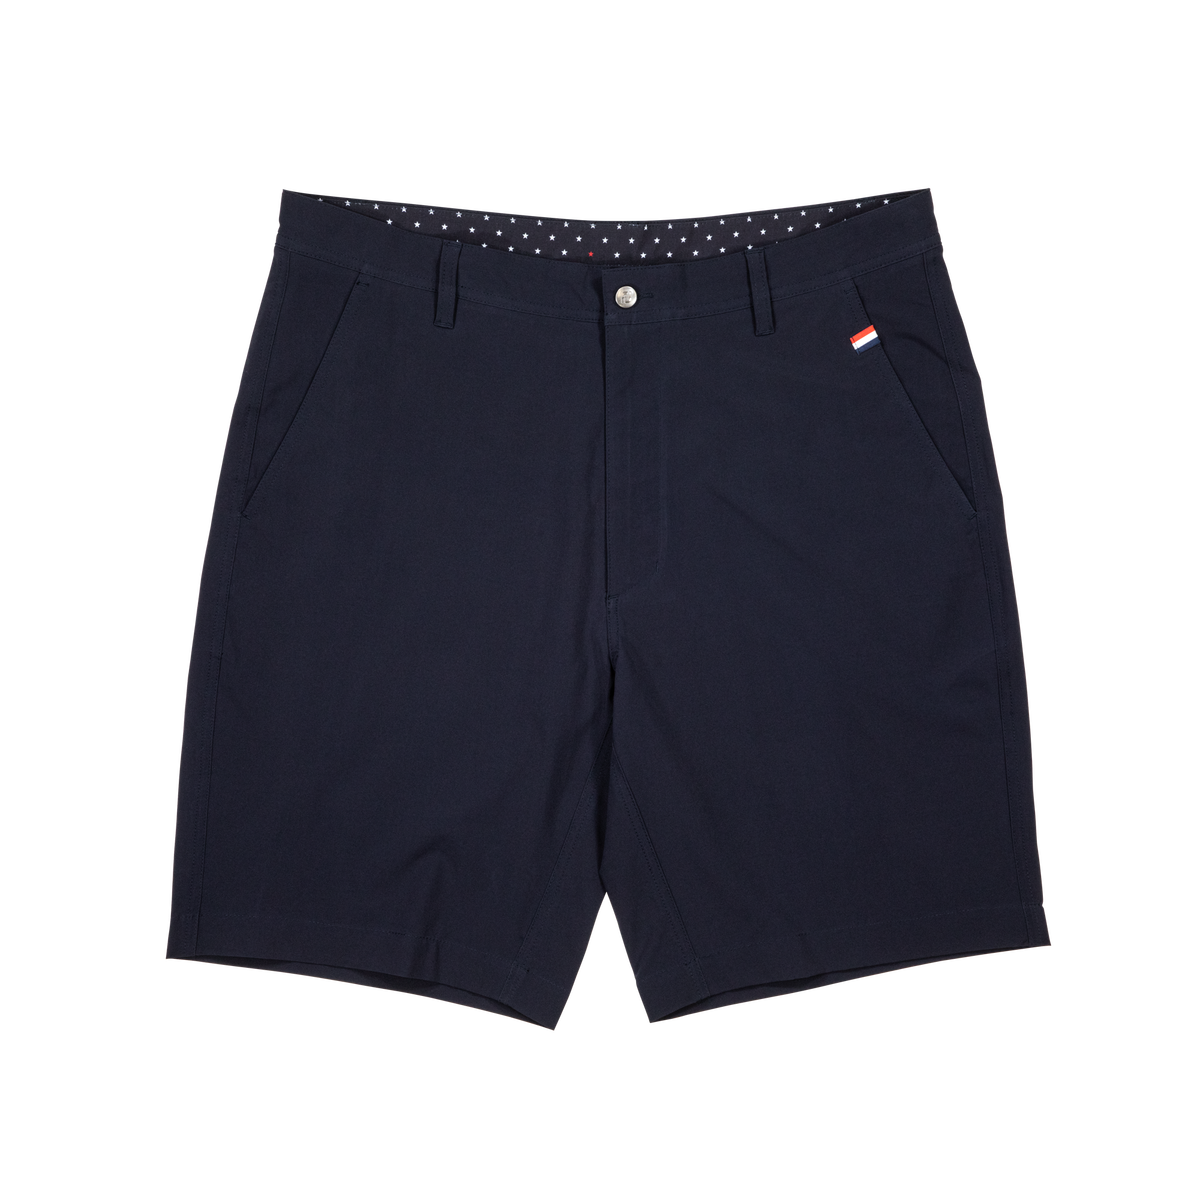 Lightweight Limited Edition Shorts